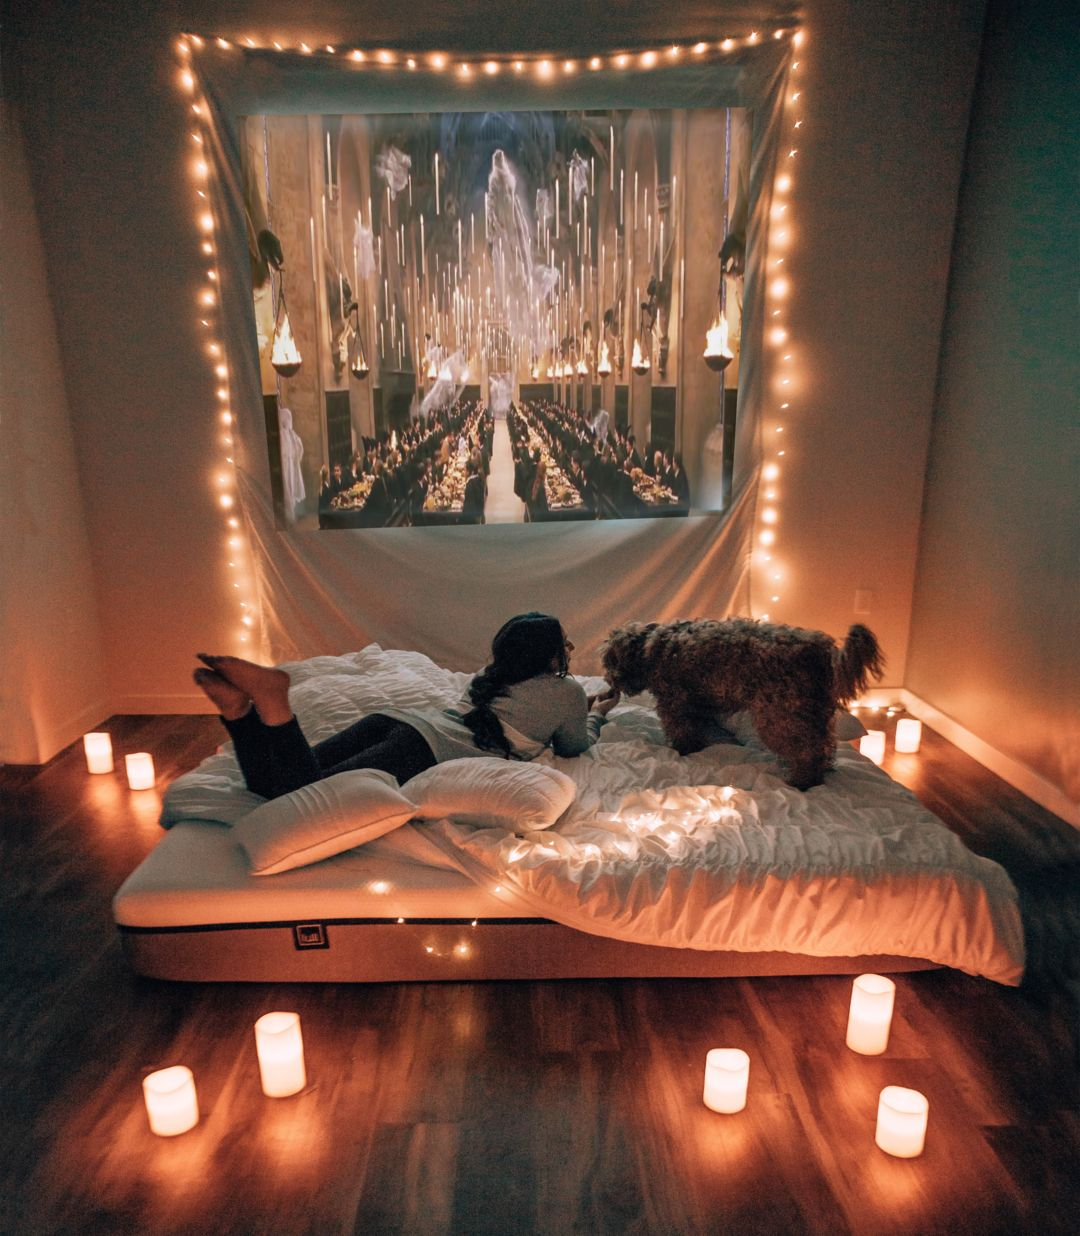 The Comfiest Set Up For A Movie Night See Why The Lull Mattress